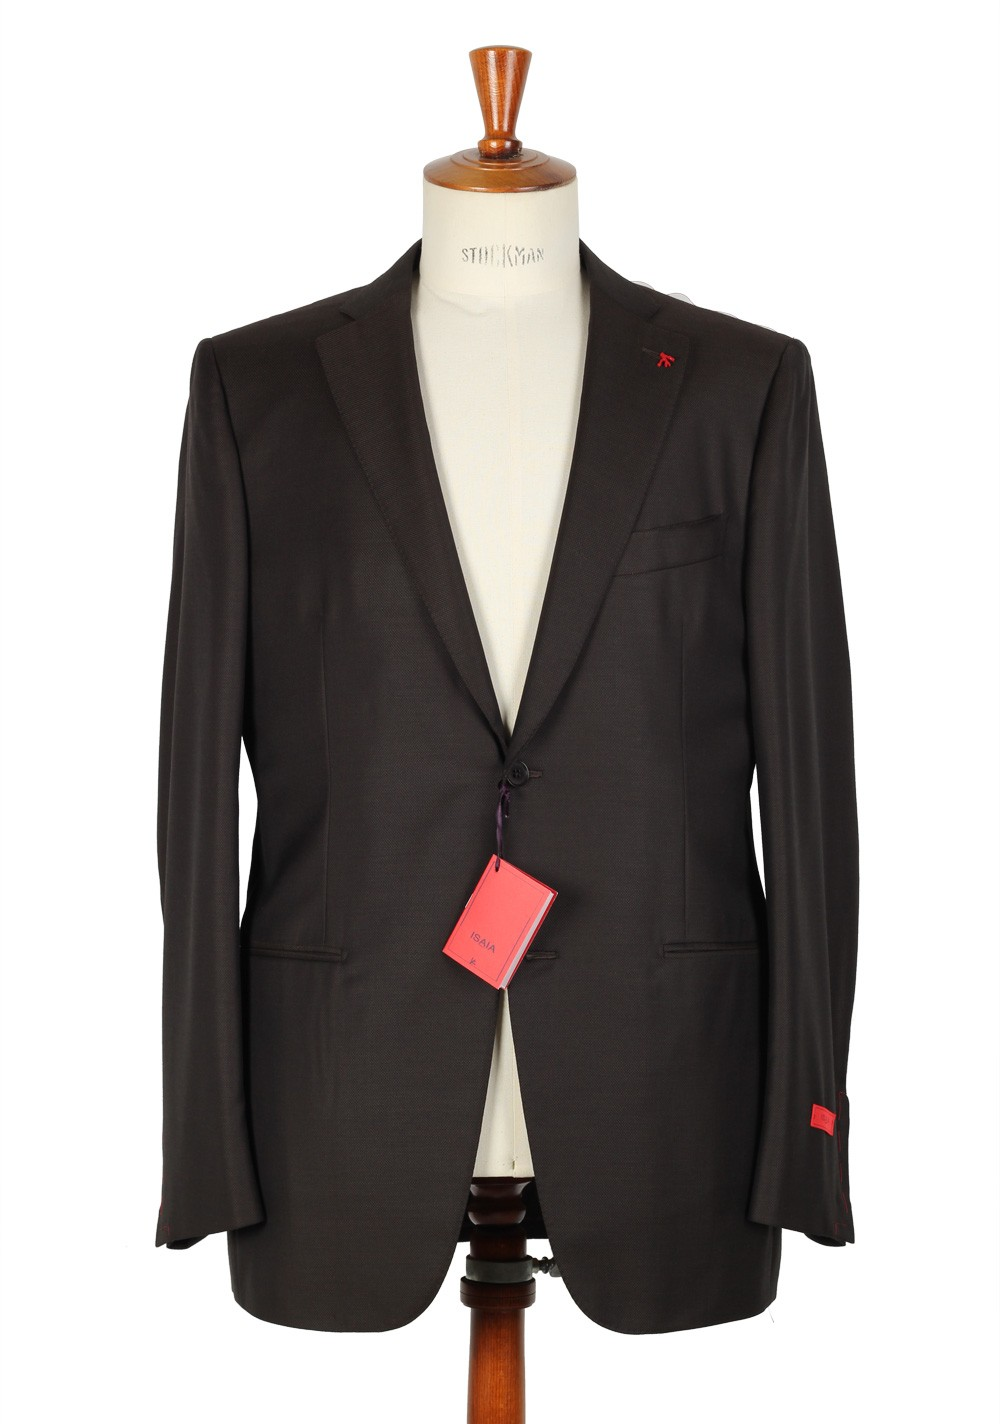 Find great deals on eBay for 42l suit. Shop with confidence. Skip to main content. eBay: Shop by category. Shop by category. Enter your search keyword Men's Chaps Pinstripe 3-Button Suit Size 42L Jacket, Size 32x32 Pants. Pre-Owned.